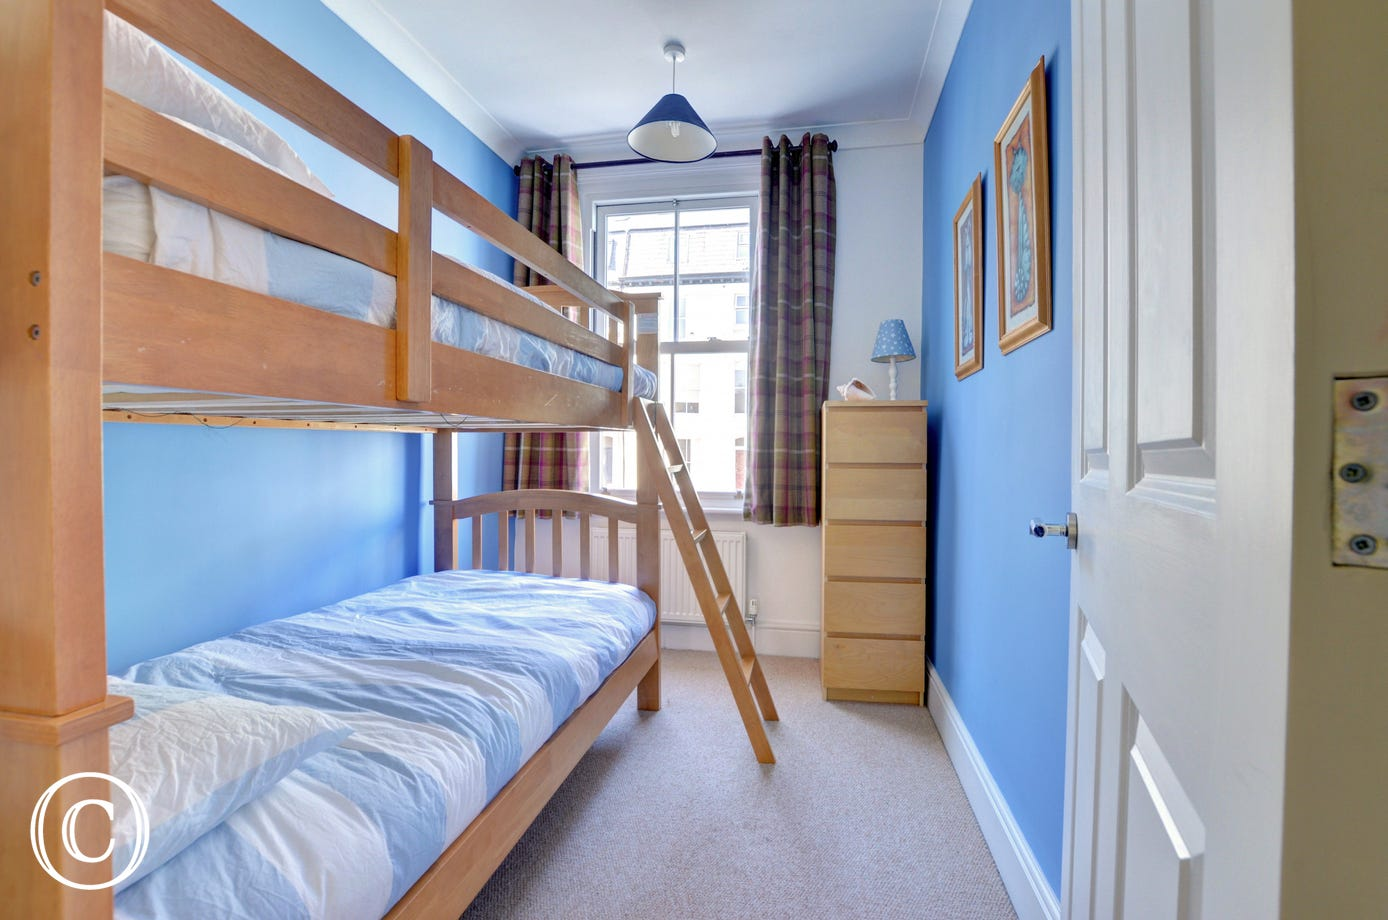 With bunk beds, this is a great bedroom for kids,